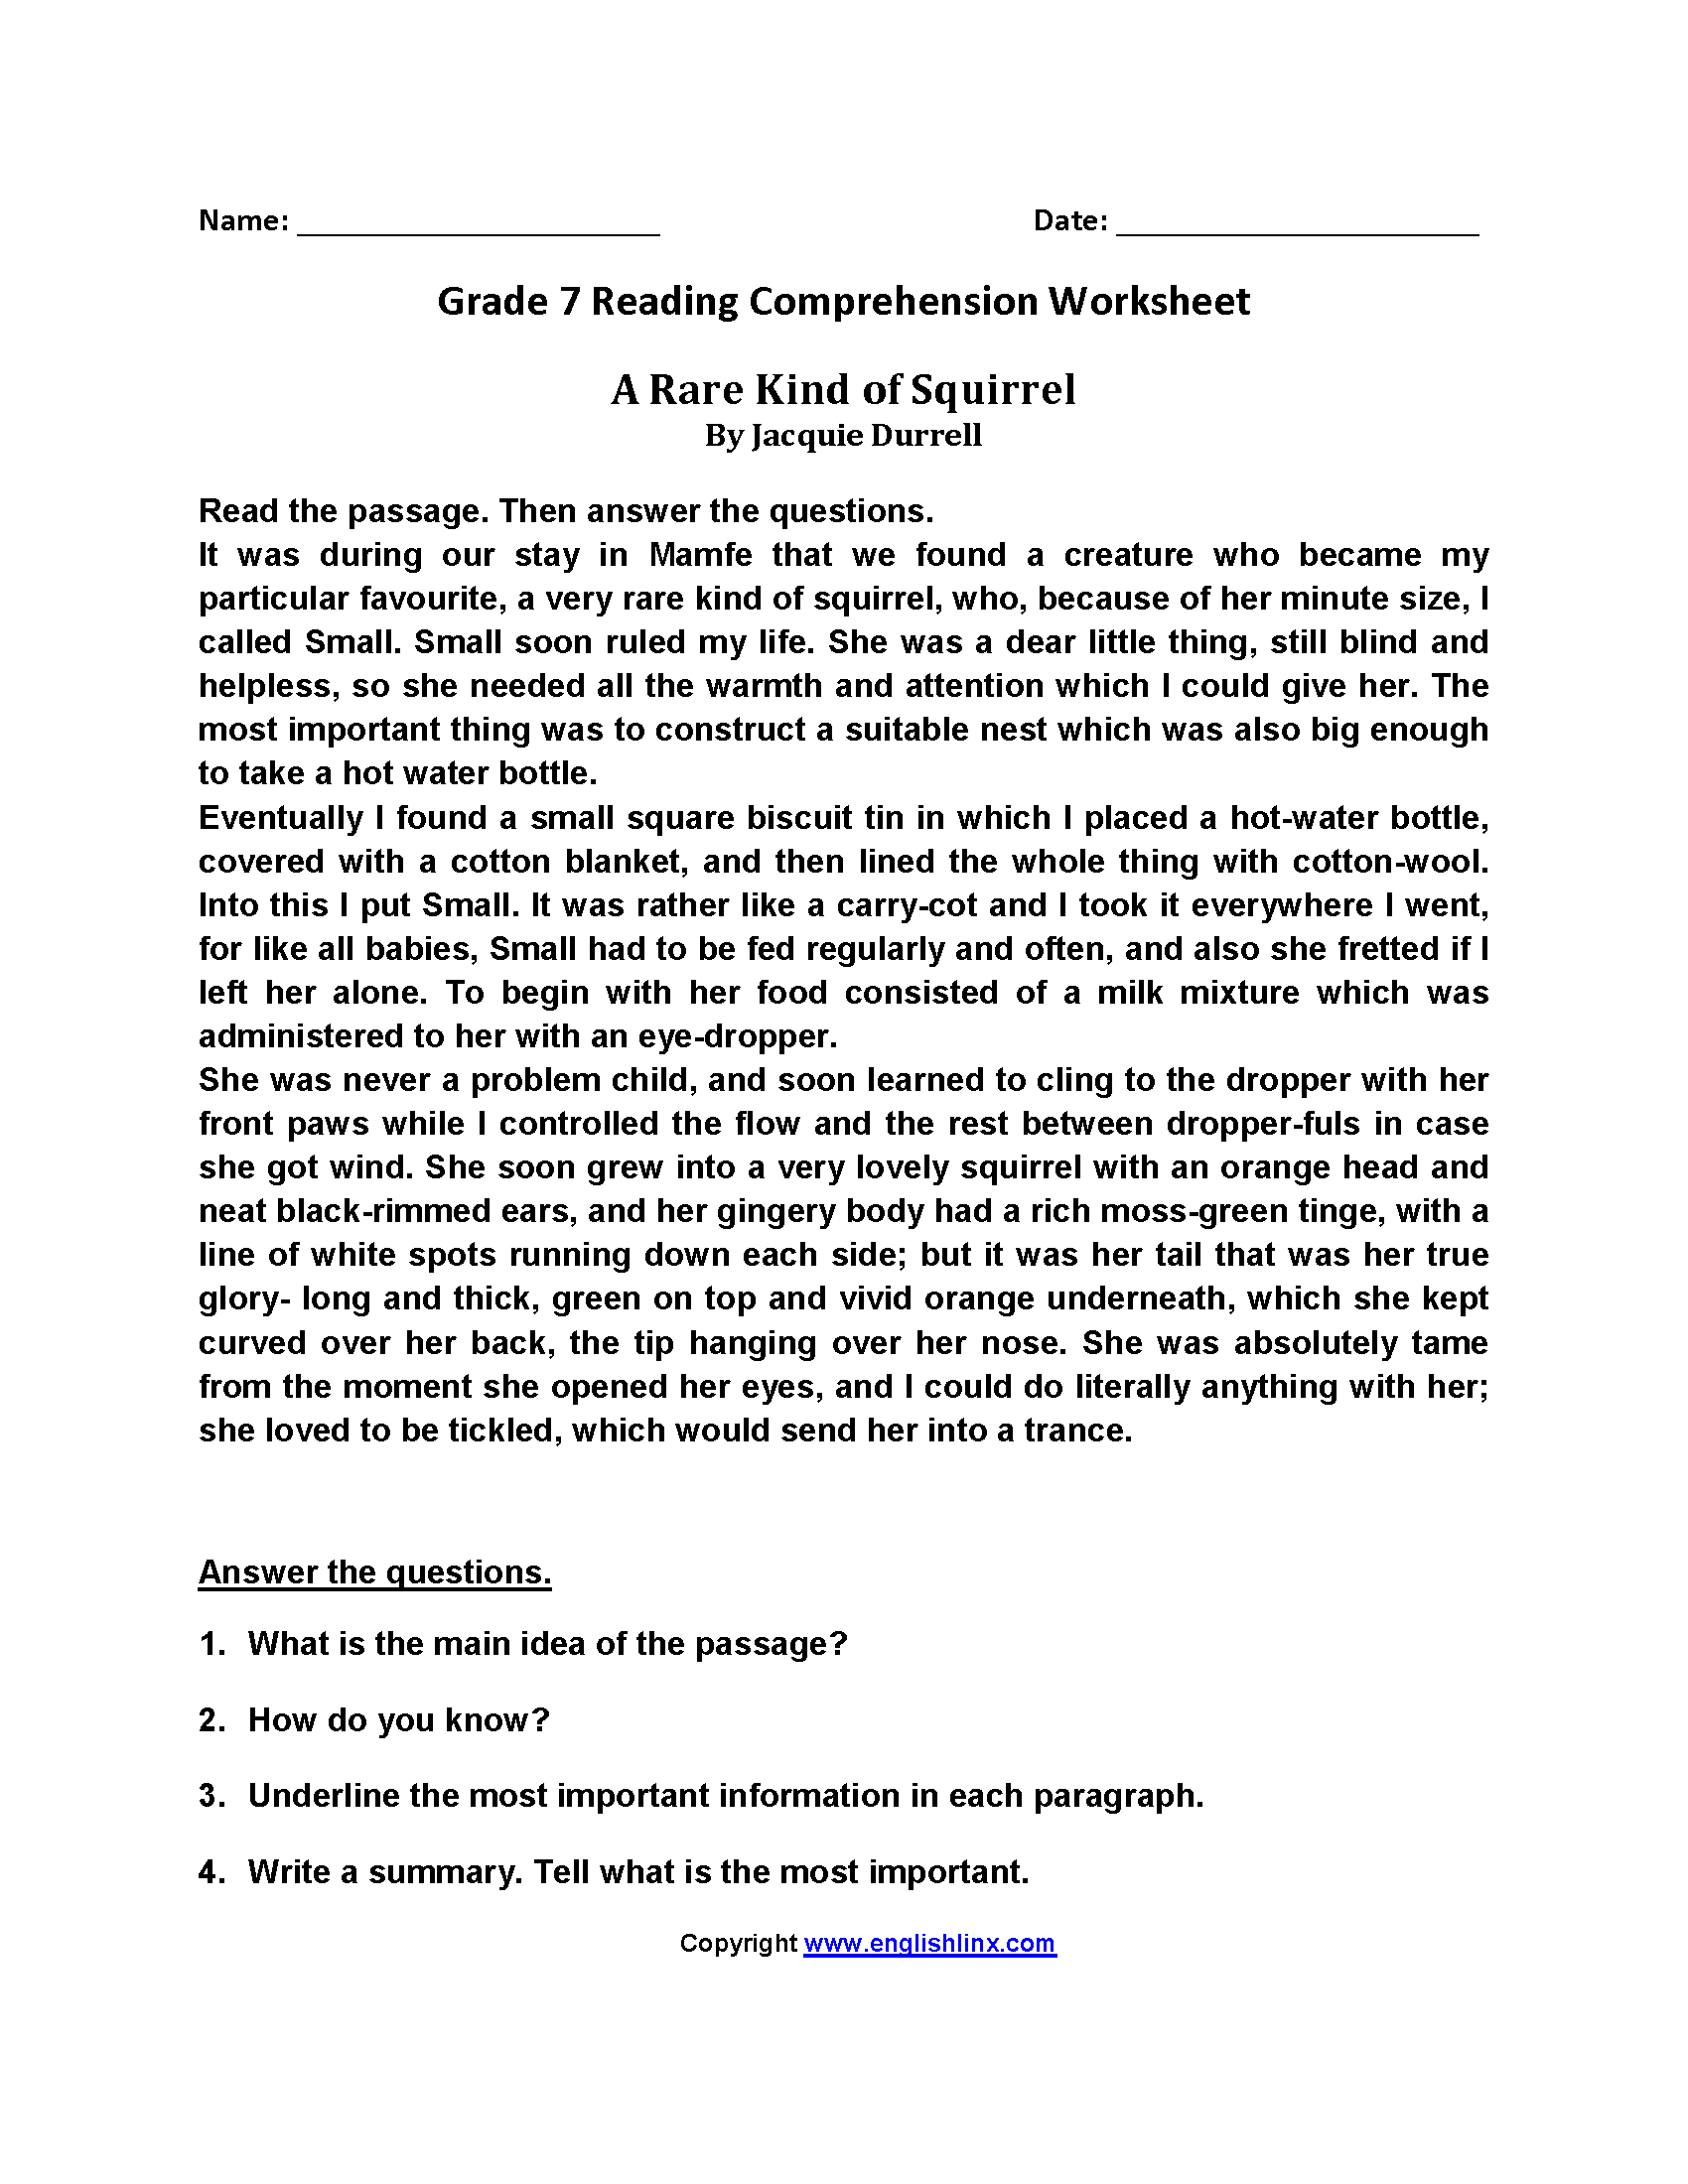 Reading Comprehension Worksheet Year 7